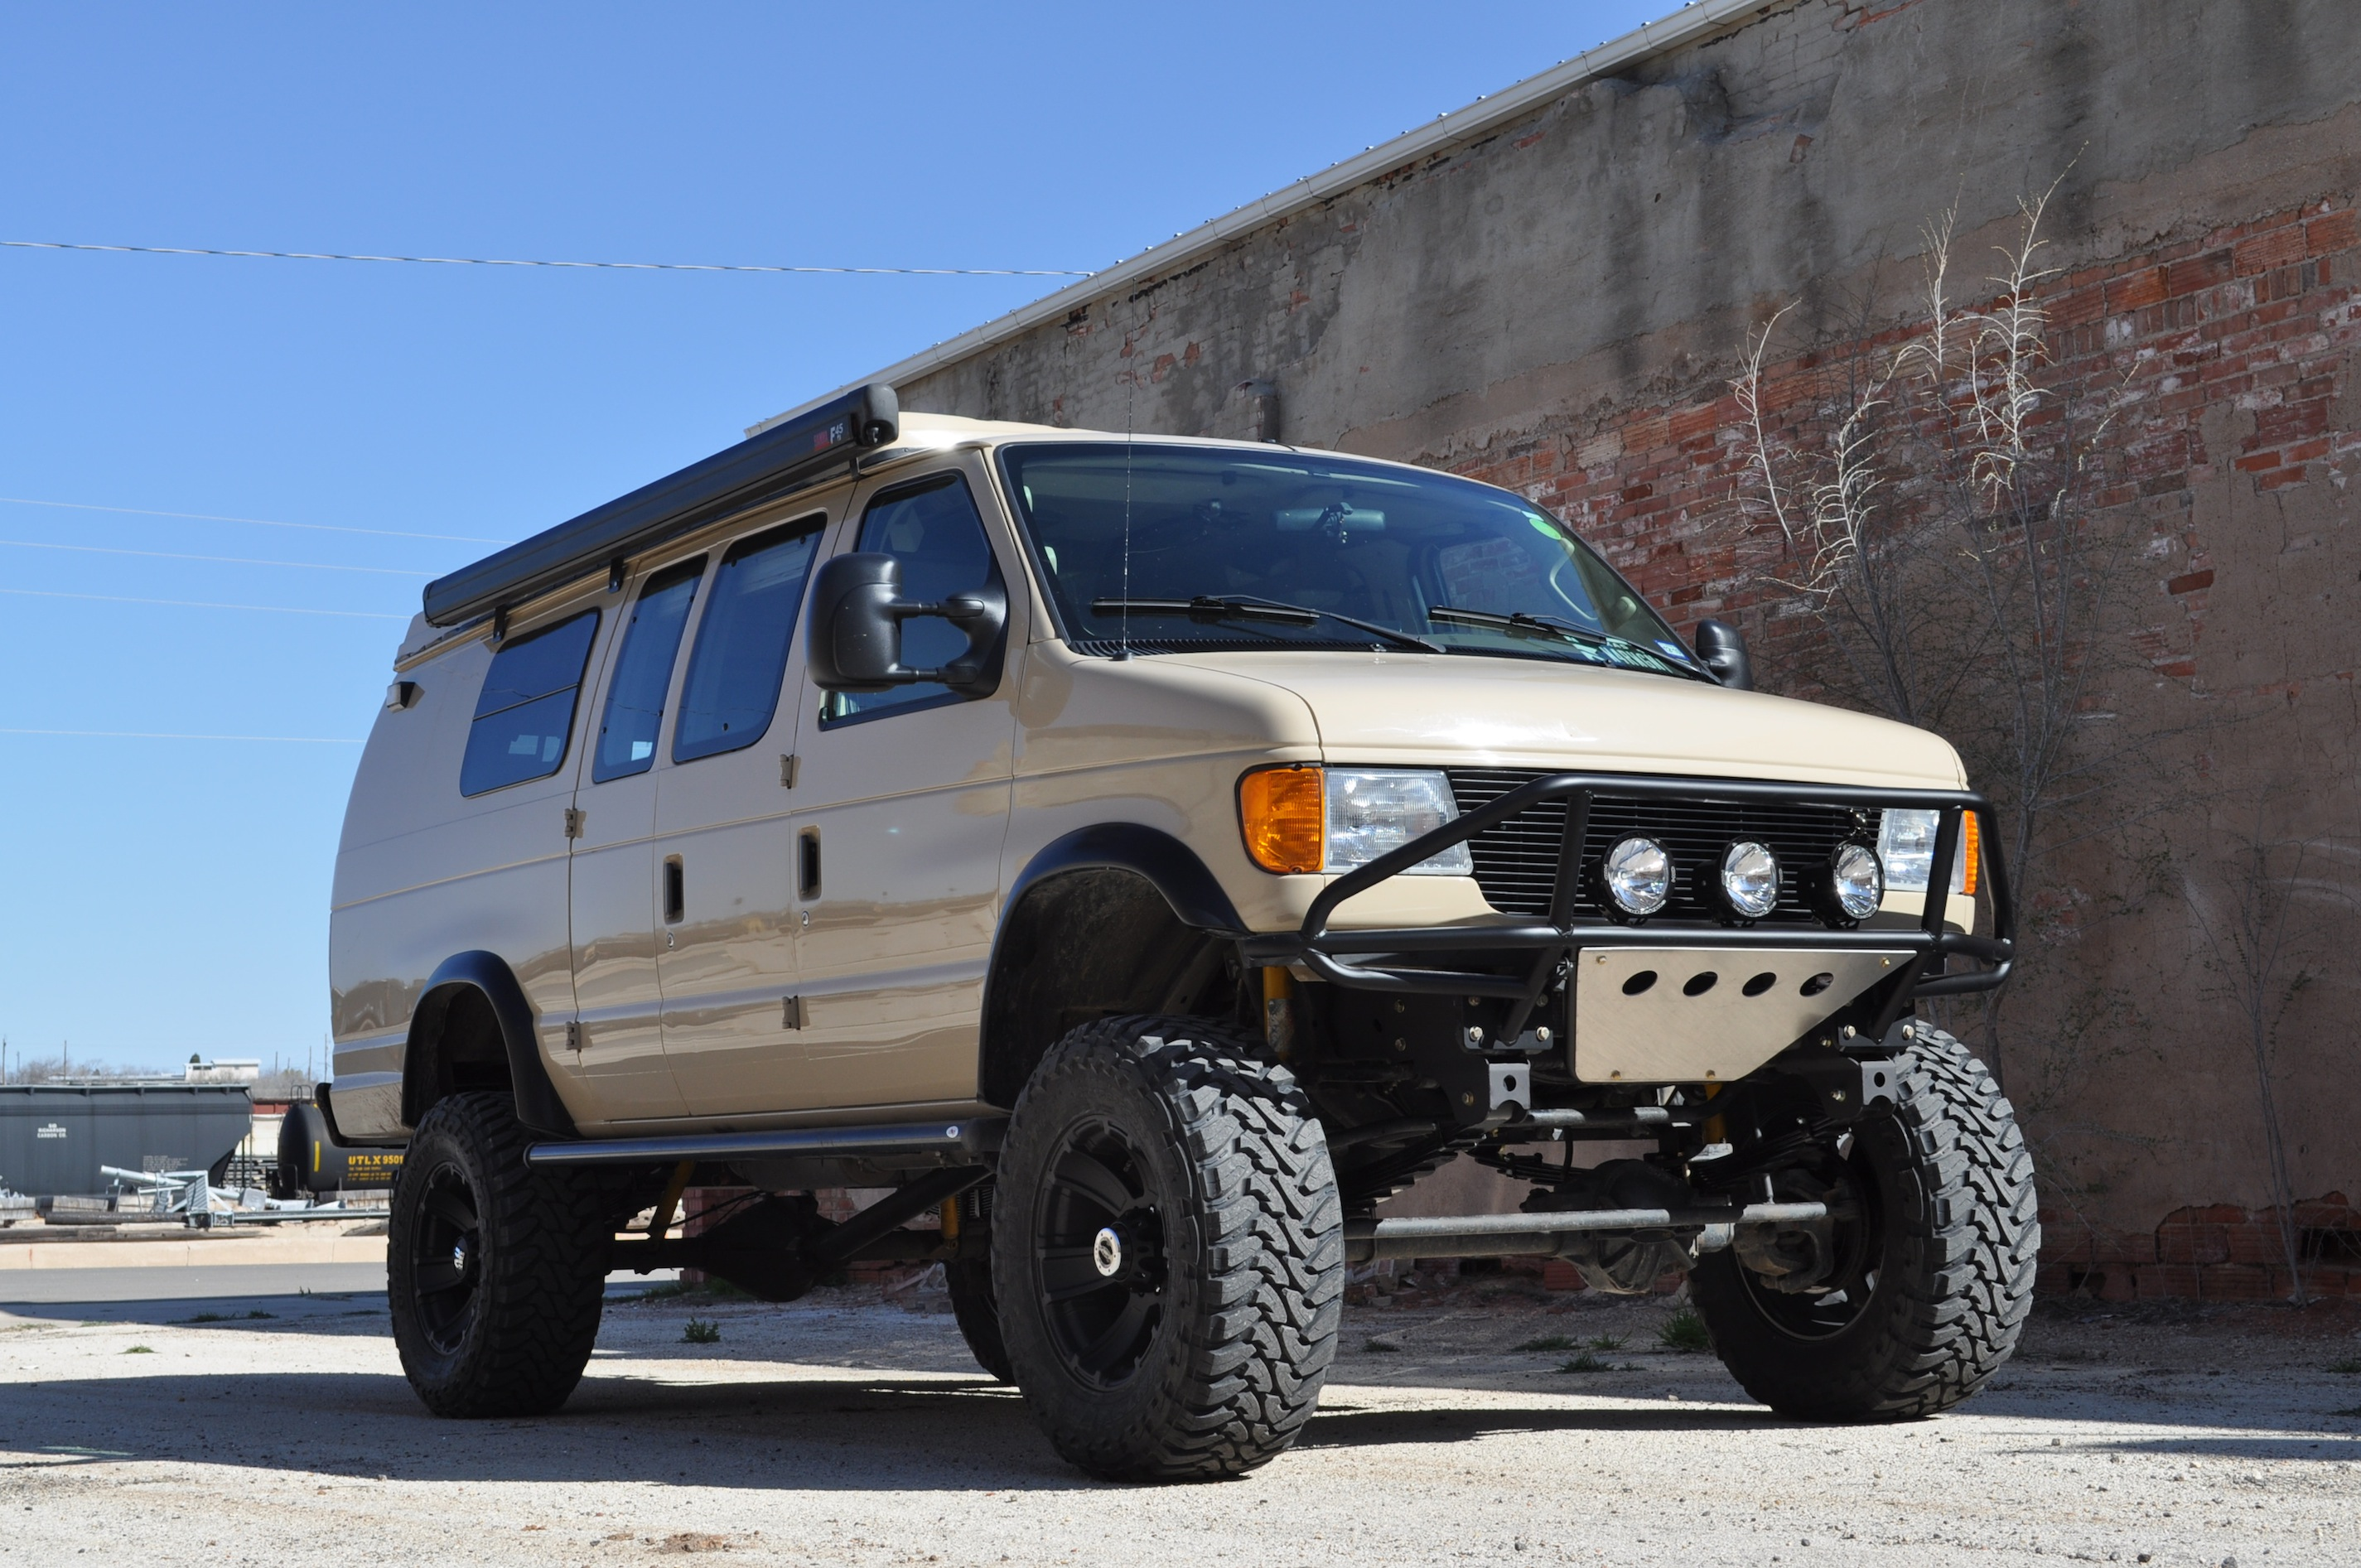 Sportsmobile 4x4 Vans Are All The Rage In Adventure Travel The Drive